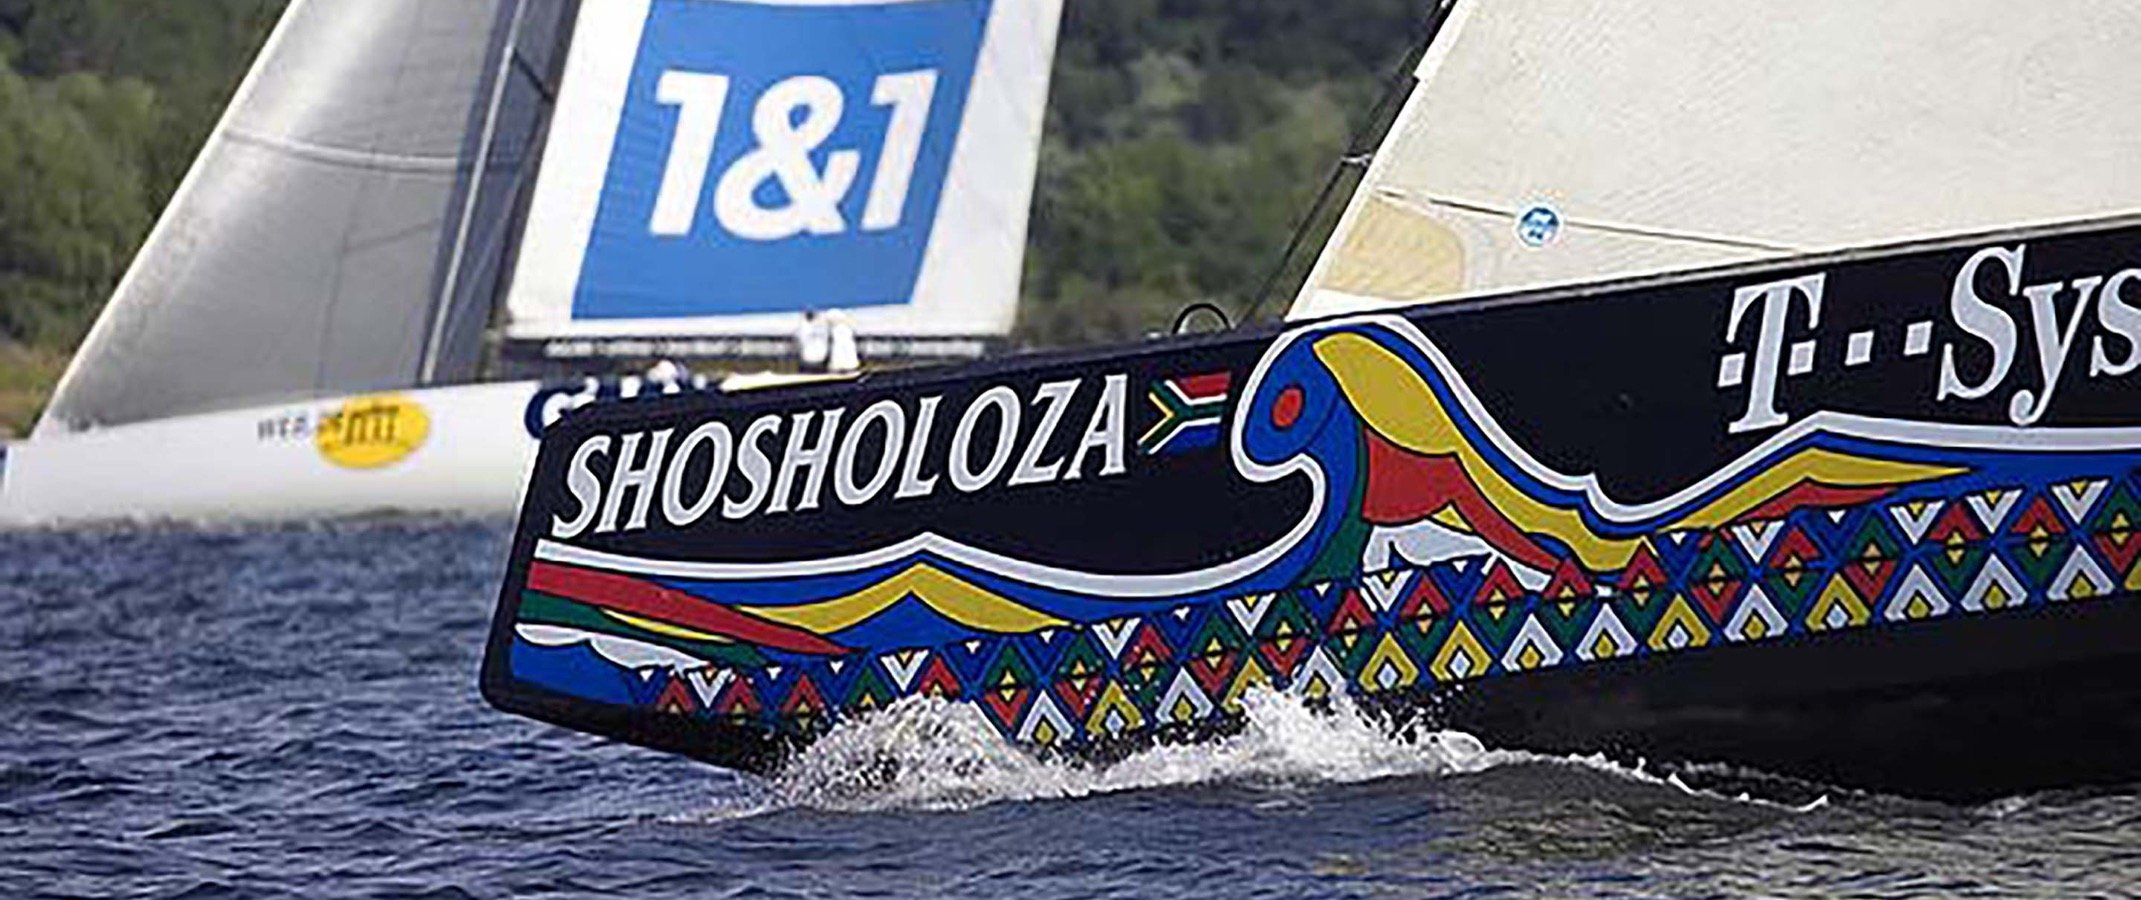 Shosholoza - South African entry to the Americas Cup